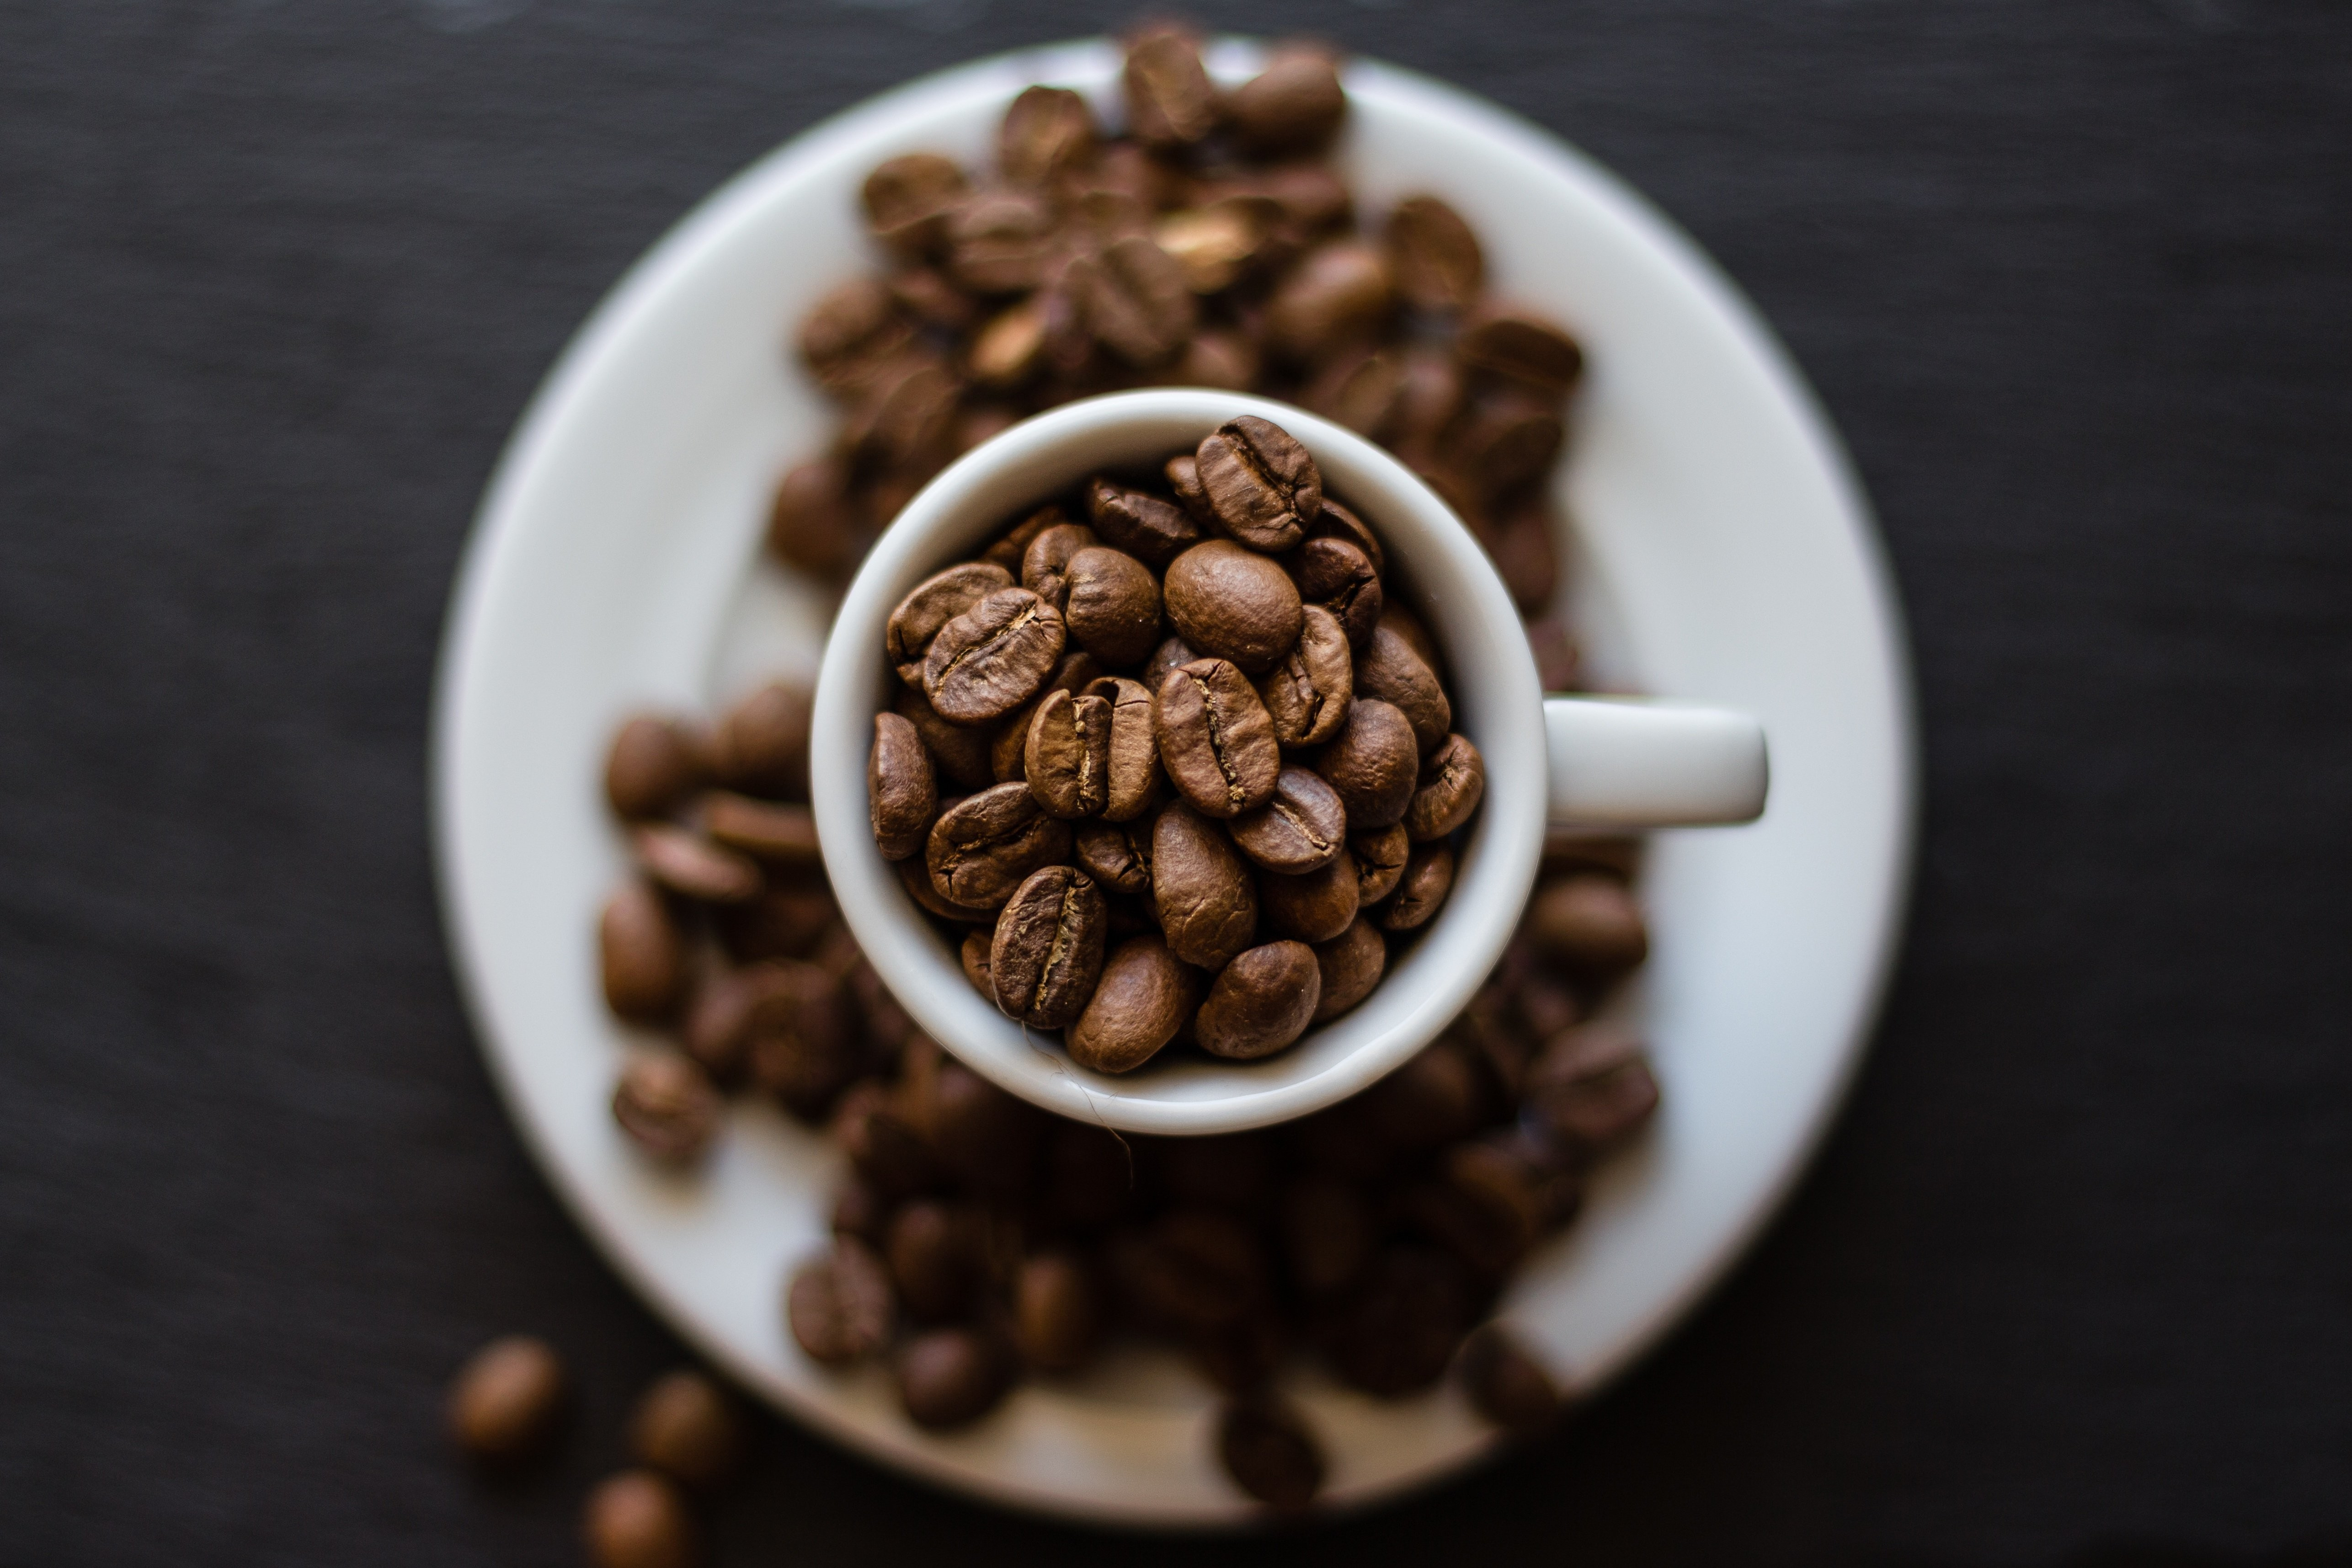 shown here are some coffee beans. Brazil was the country that produced the most kilograms of coffee in 2020.